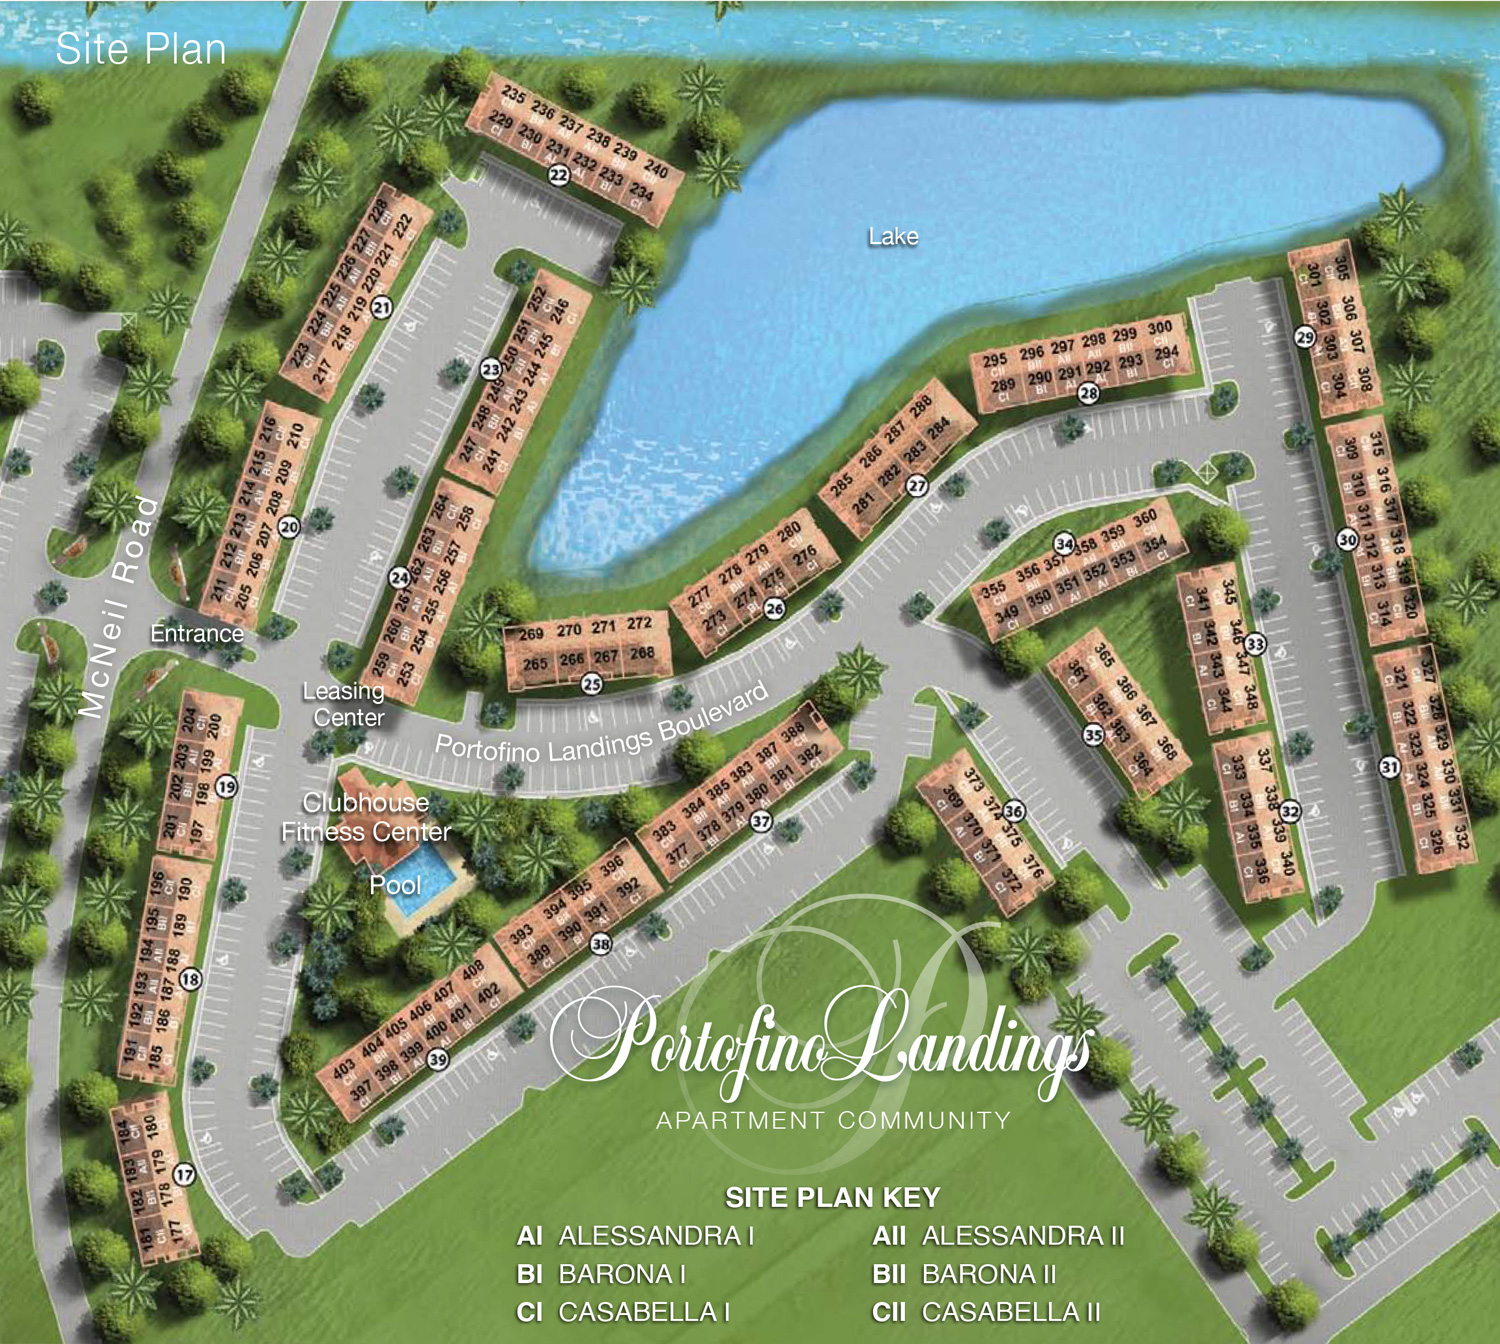 Multi Family Salsa Investments Properties Group